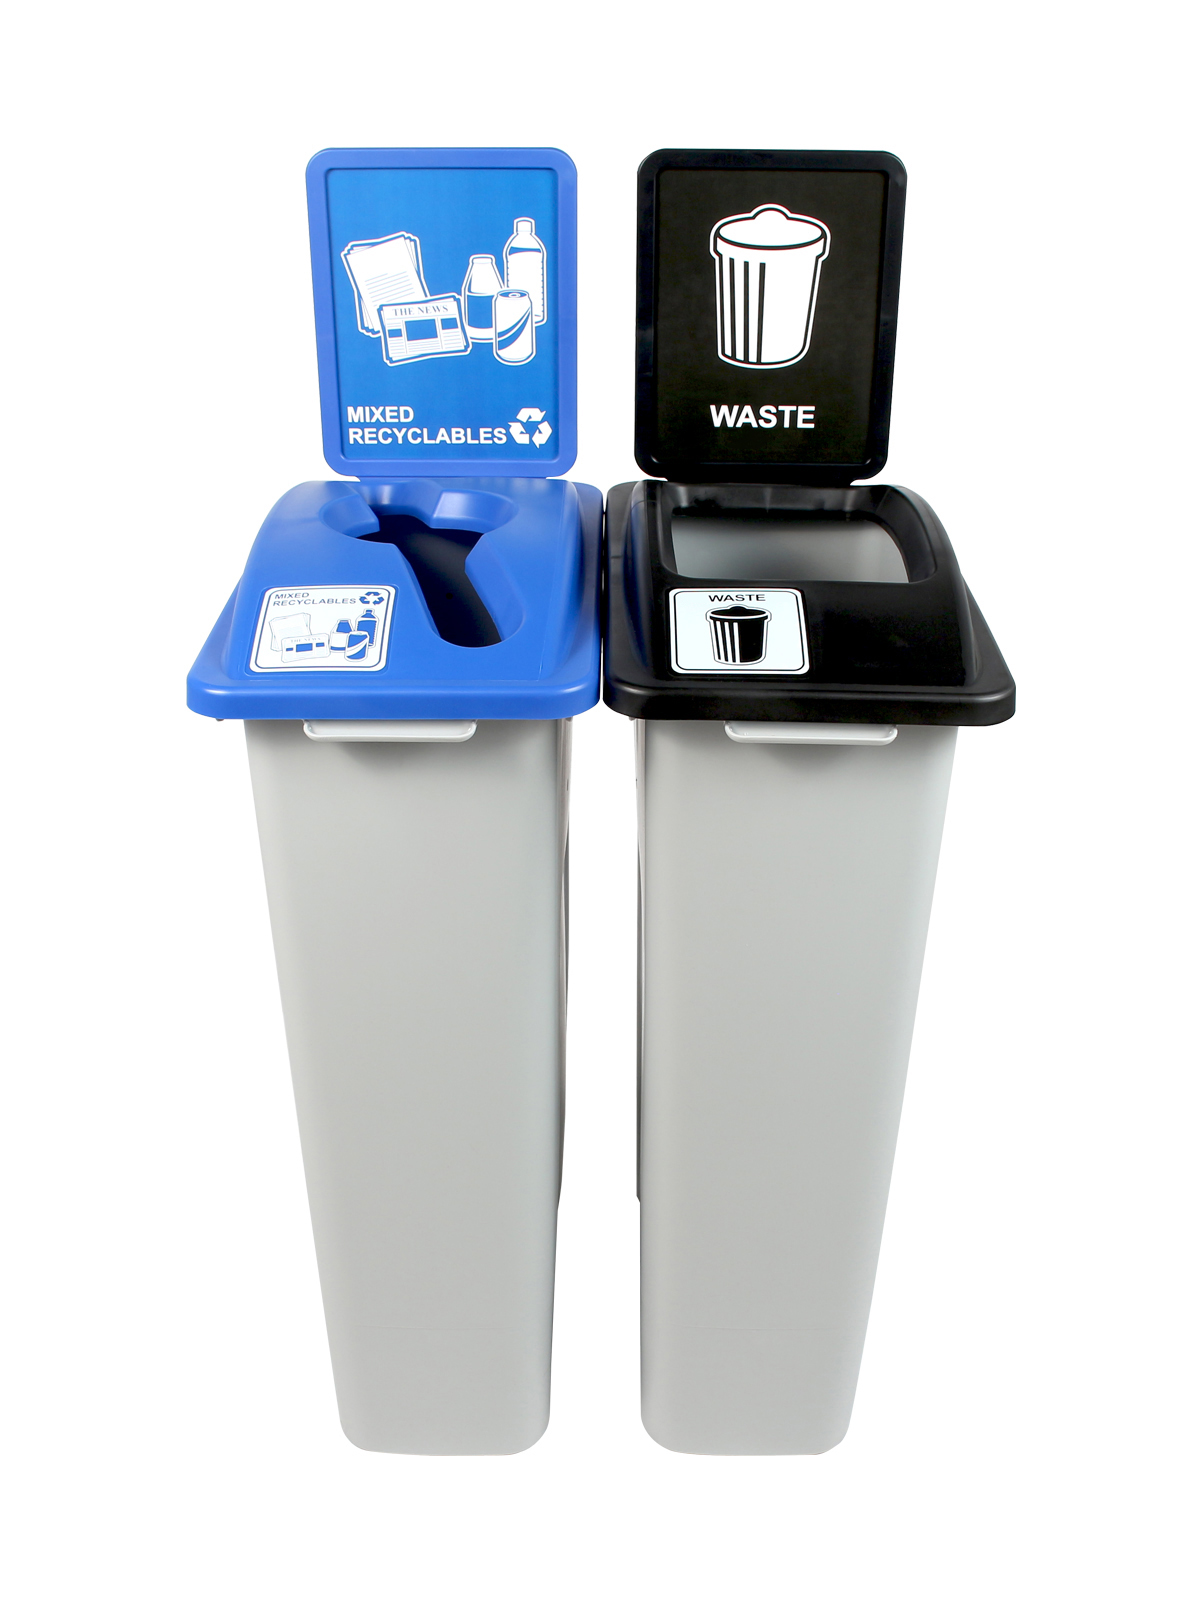 WASTE WATCHER - Double - Connecticut Compliant - Mixed Recyclables-Waste - Mixed-Full - Grey-Blue-Black title=